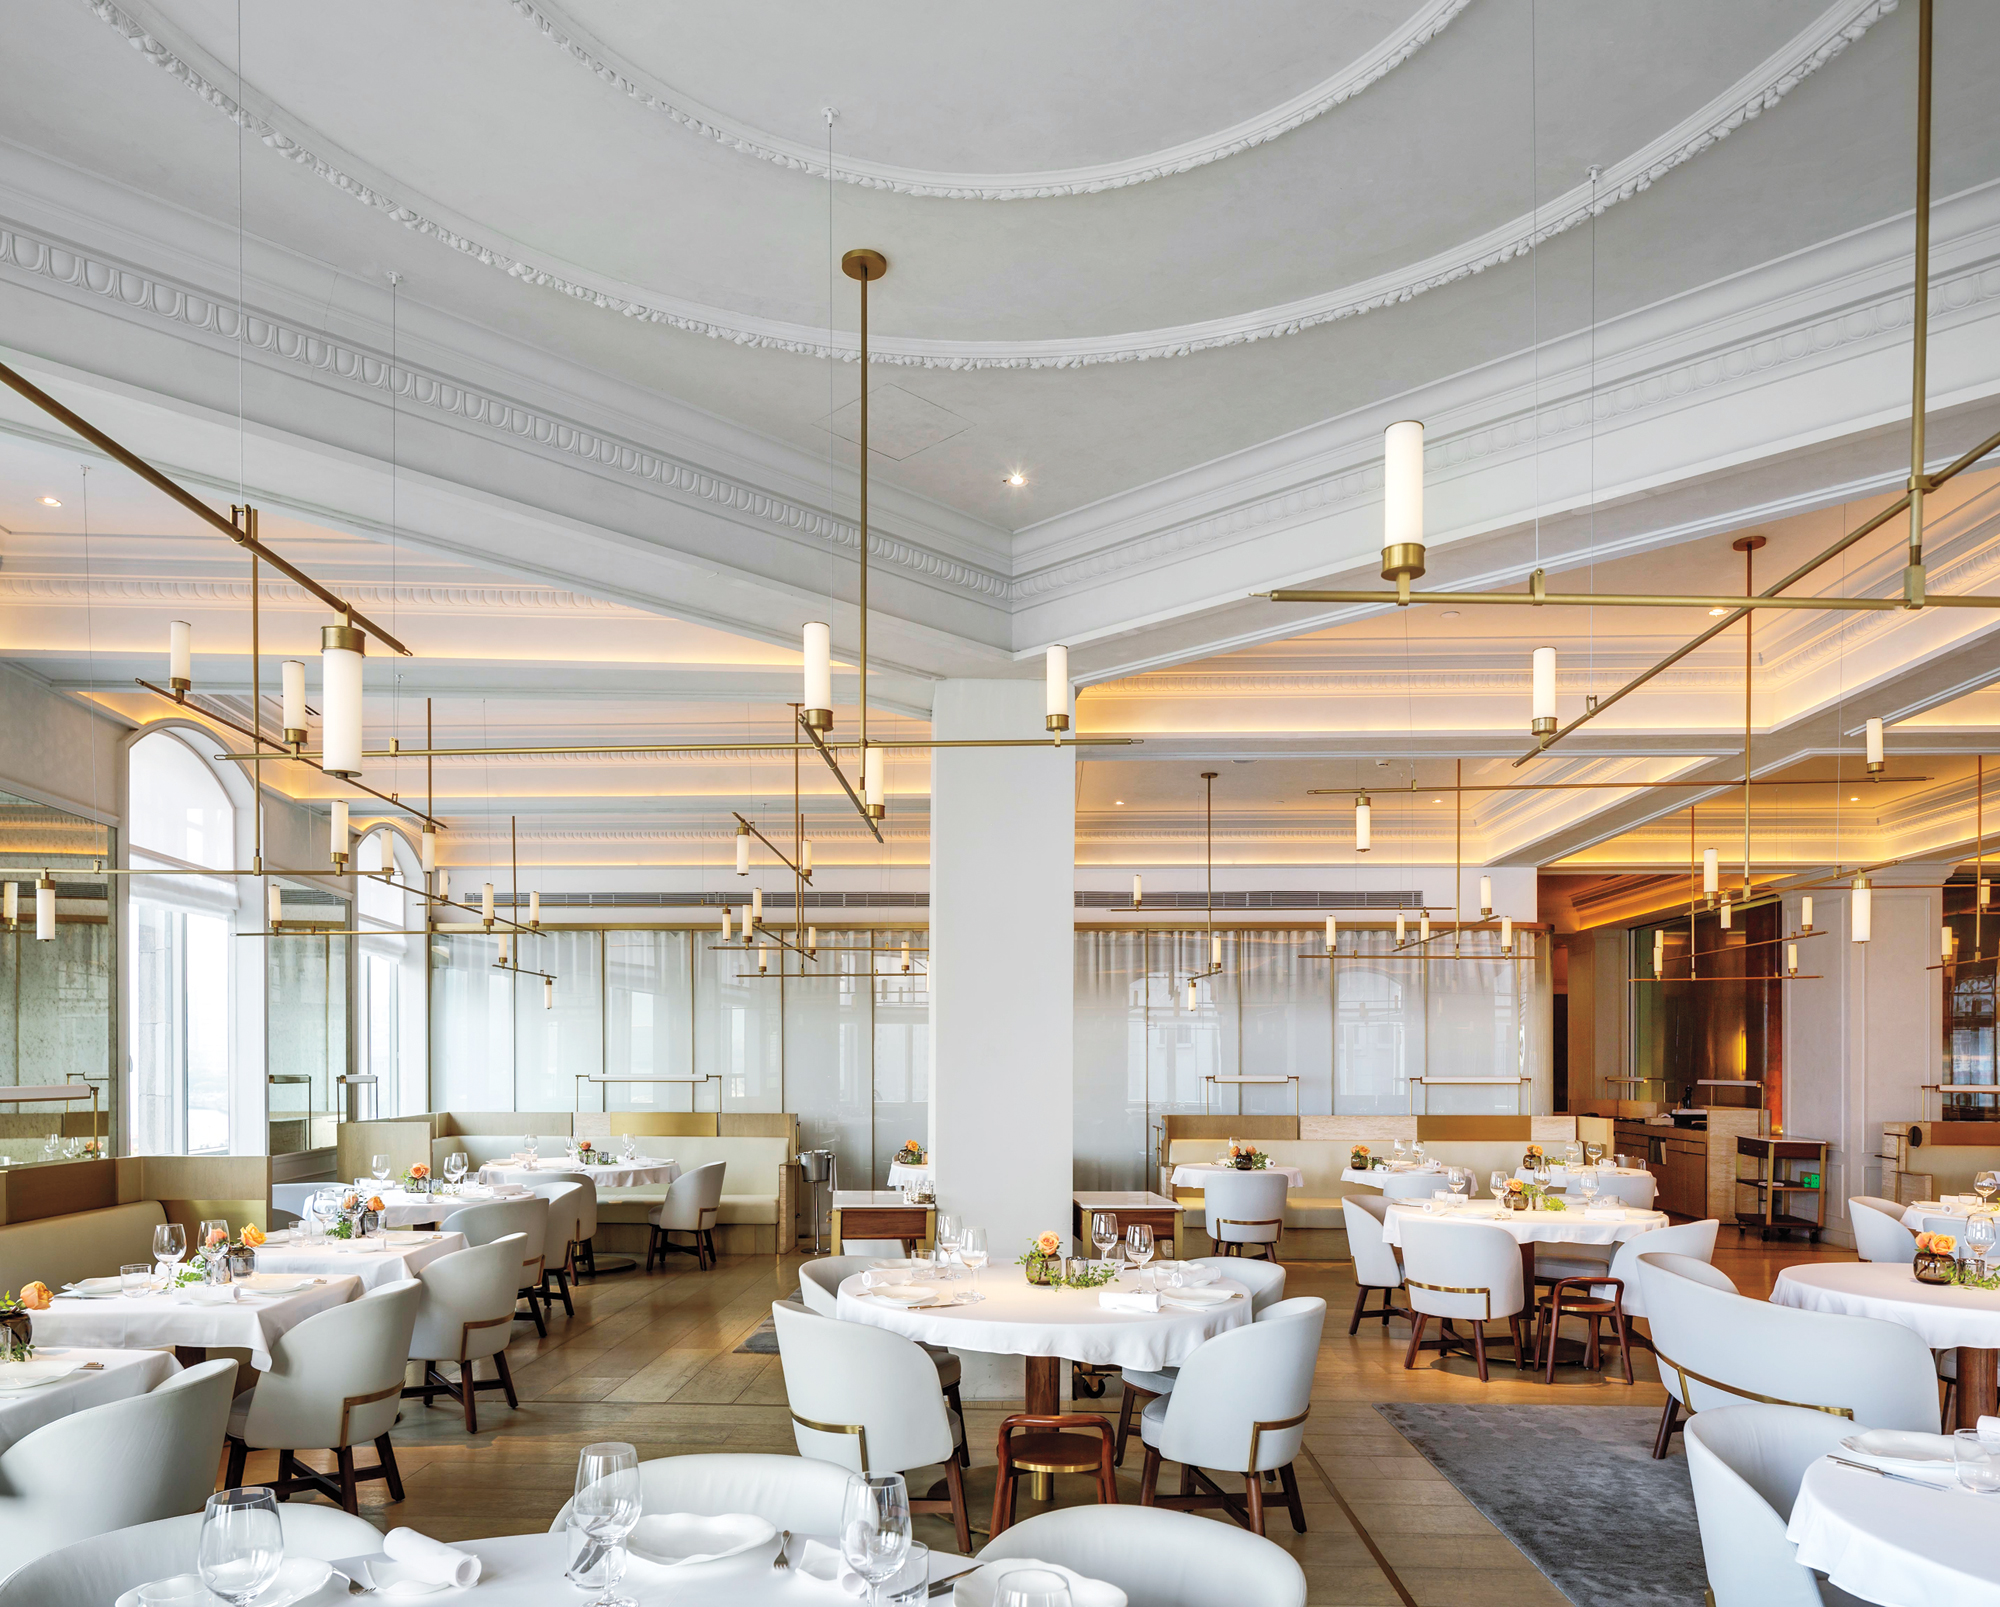 Jean georges by neri hu best of year winner for